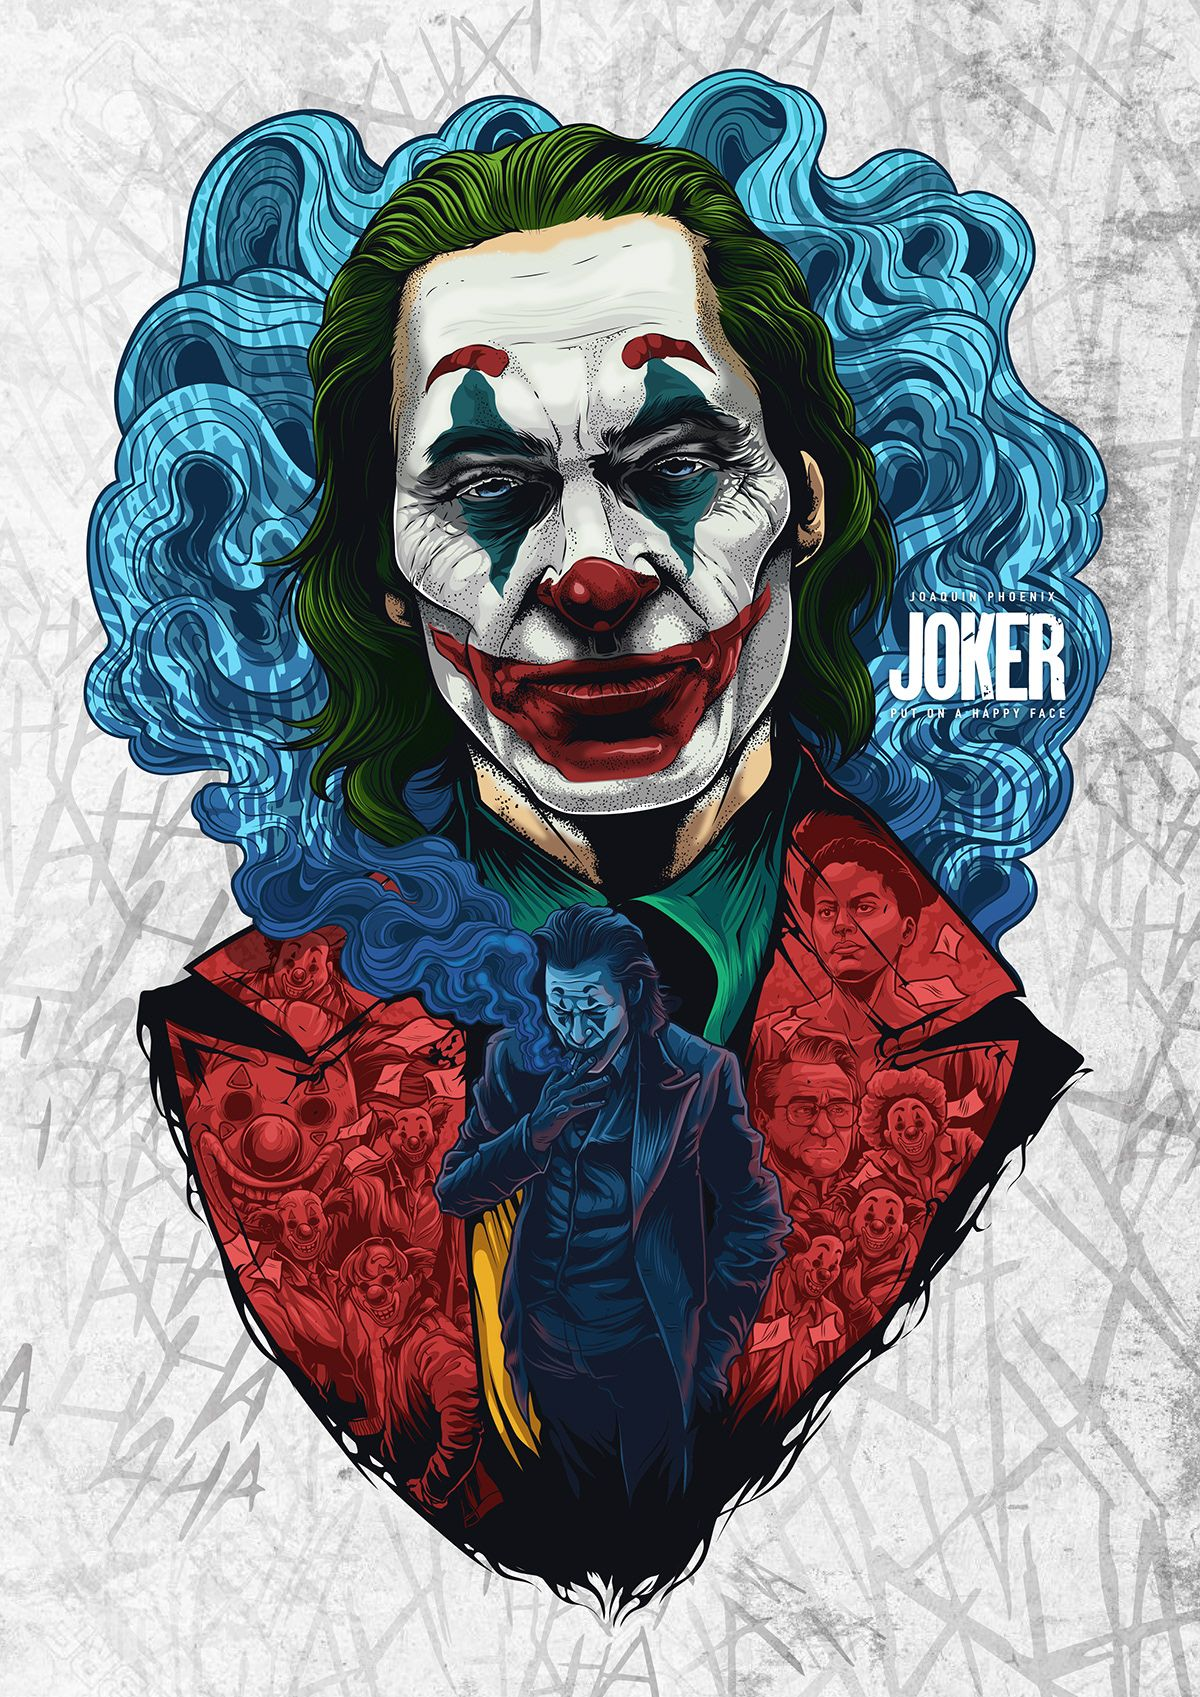 Careers Joker art, Joker drawings, Joker poster